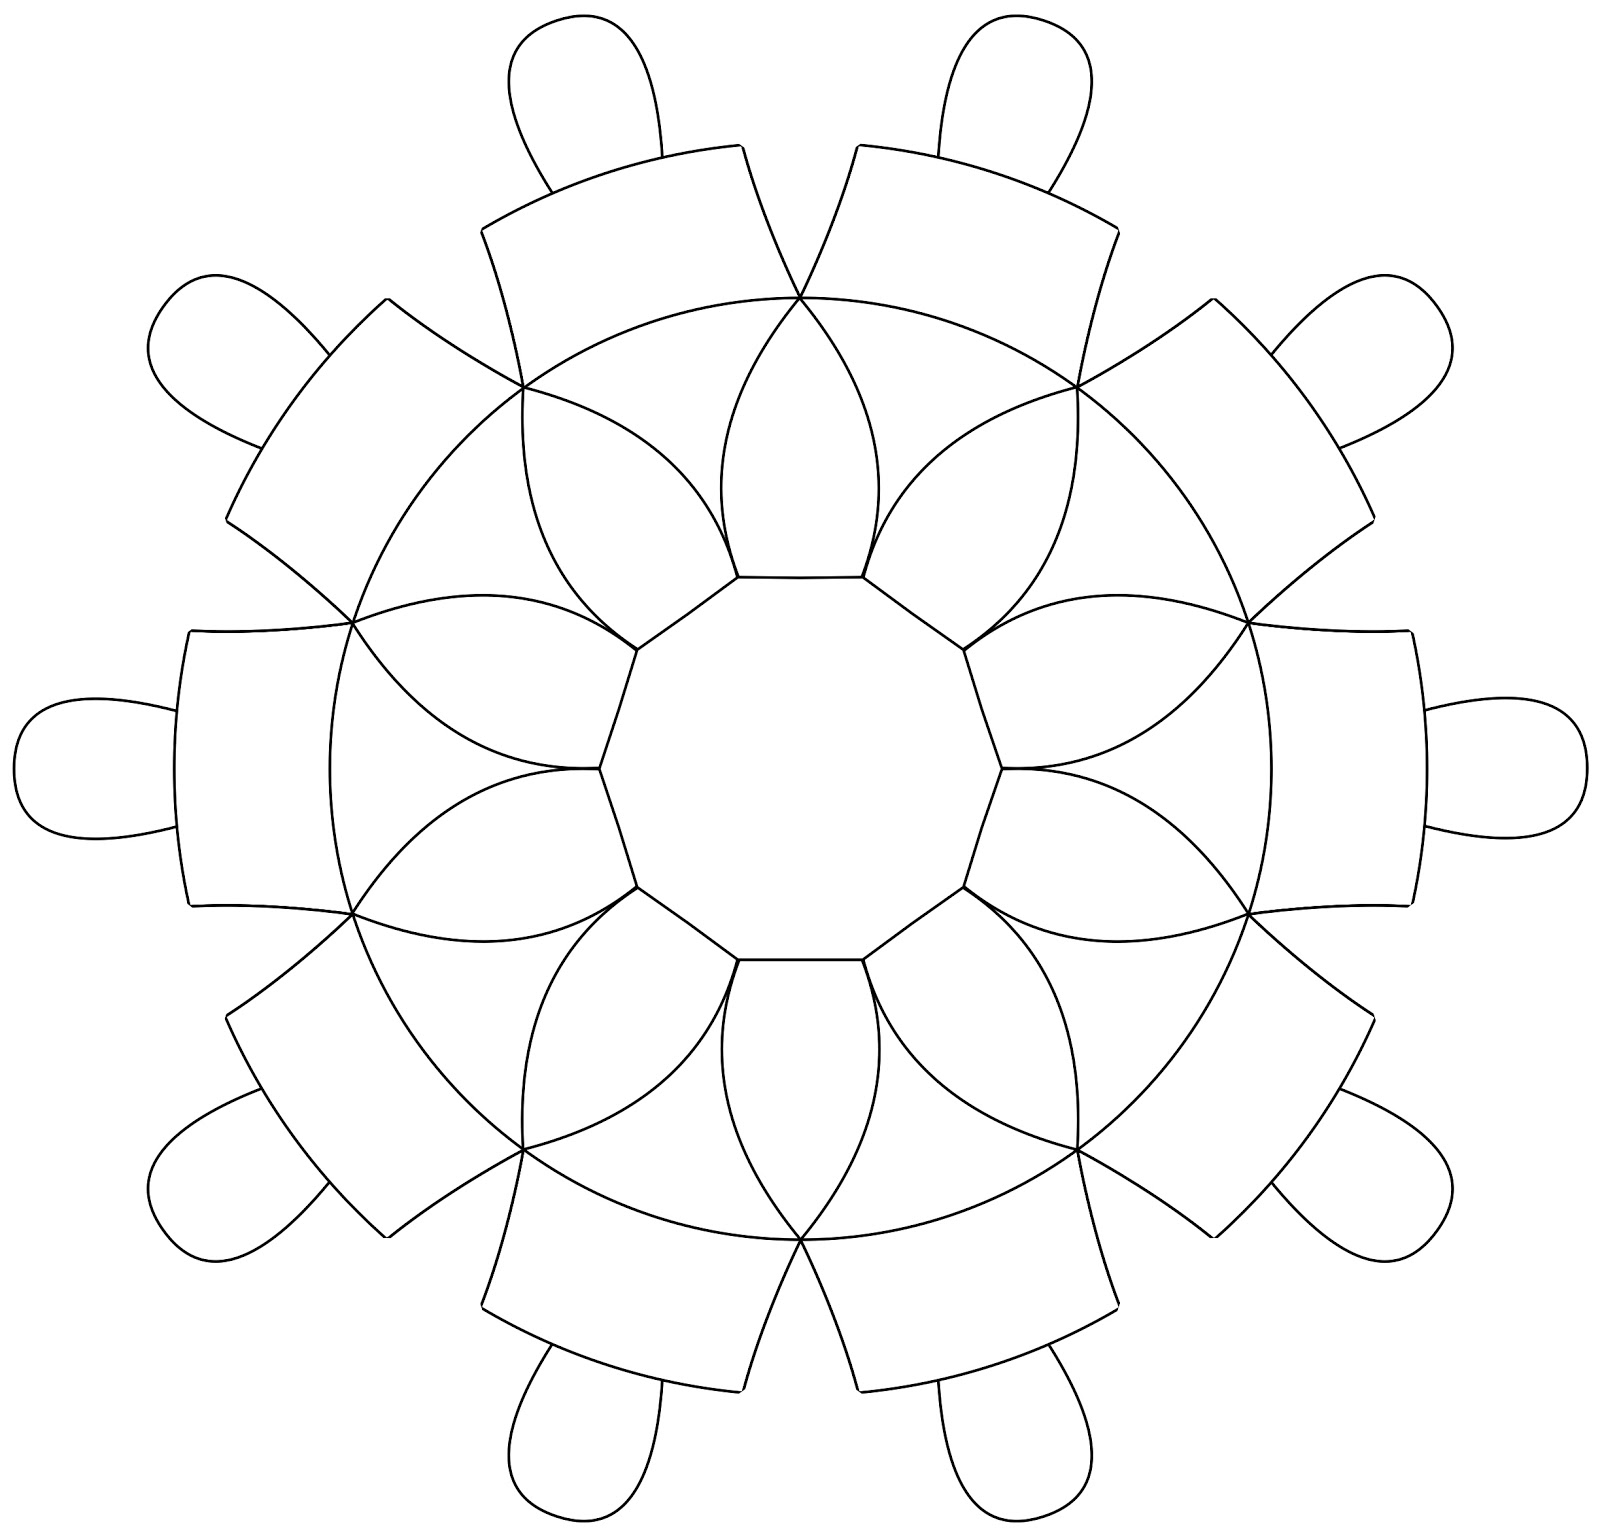 Dove Outline Template Here is this week's template: